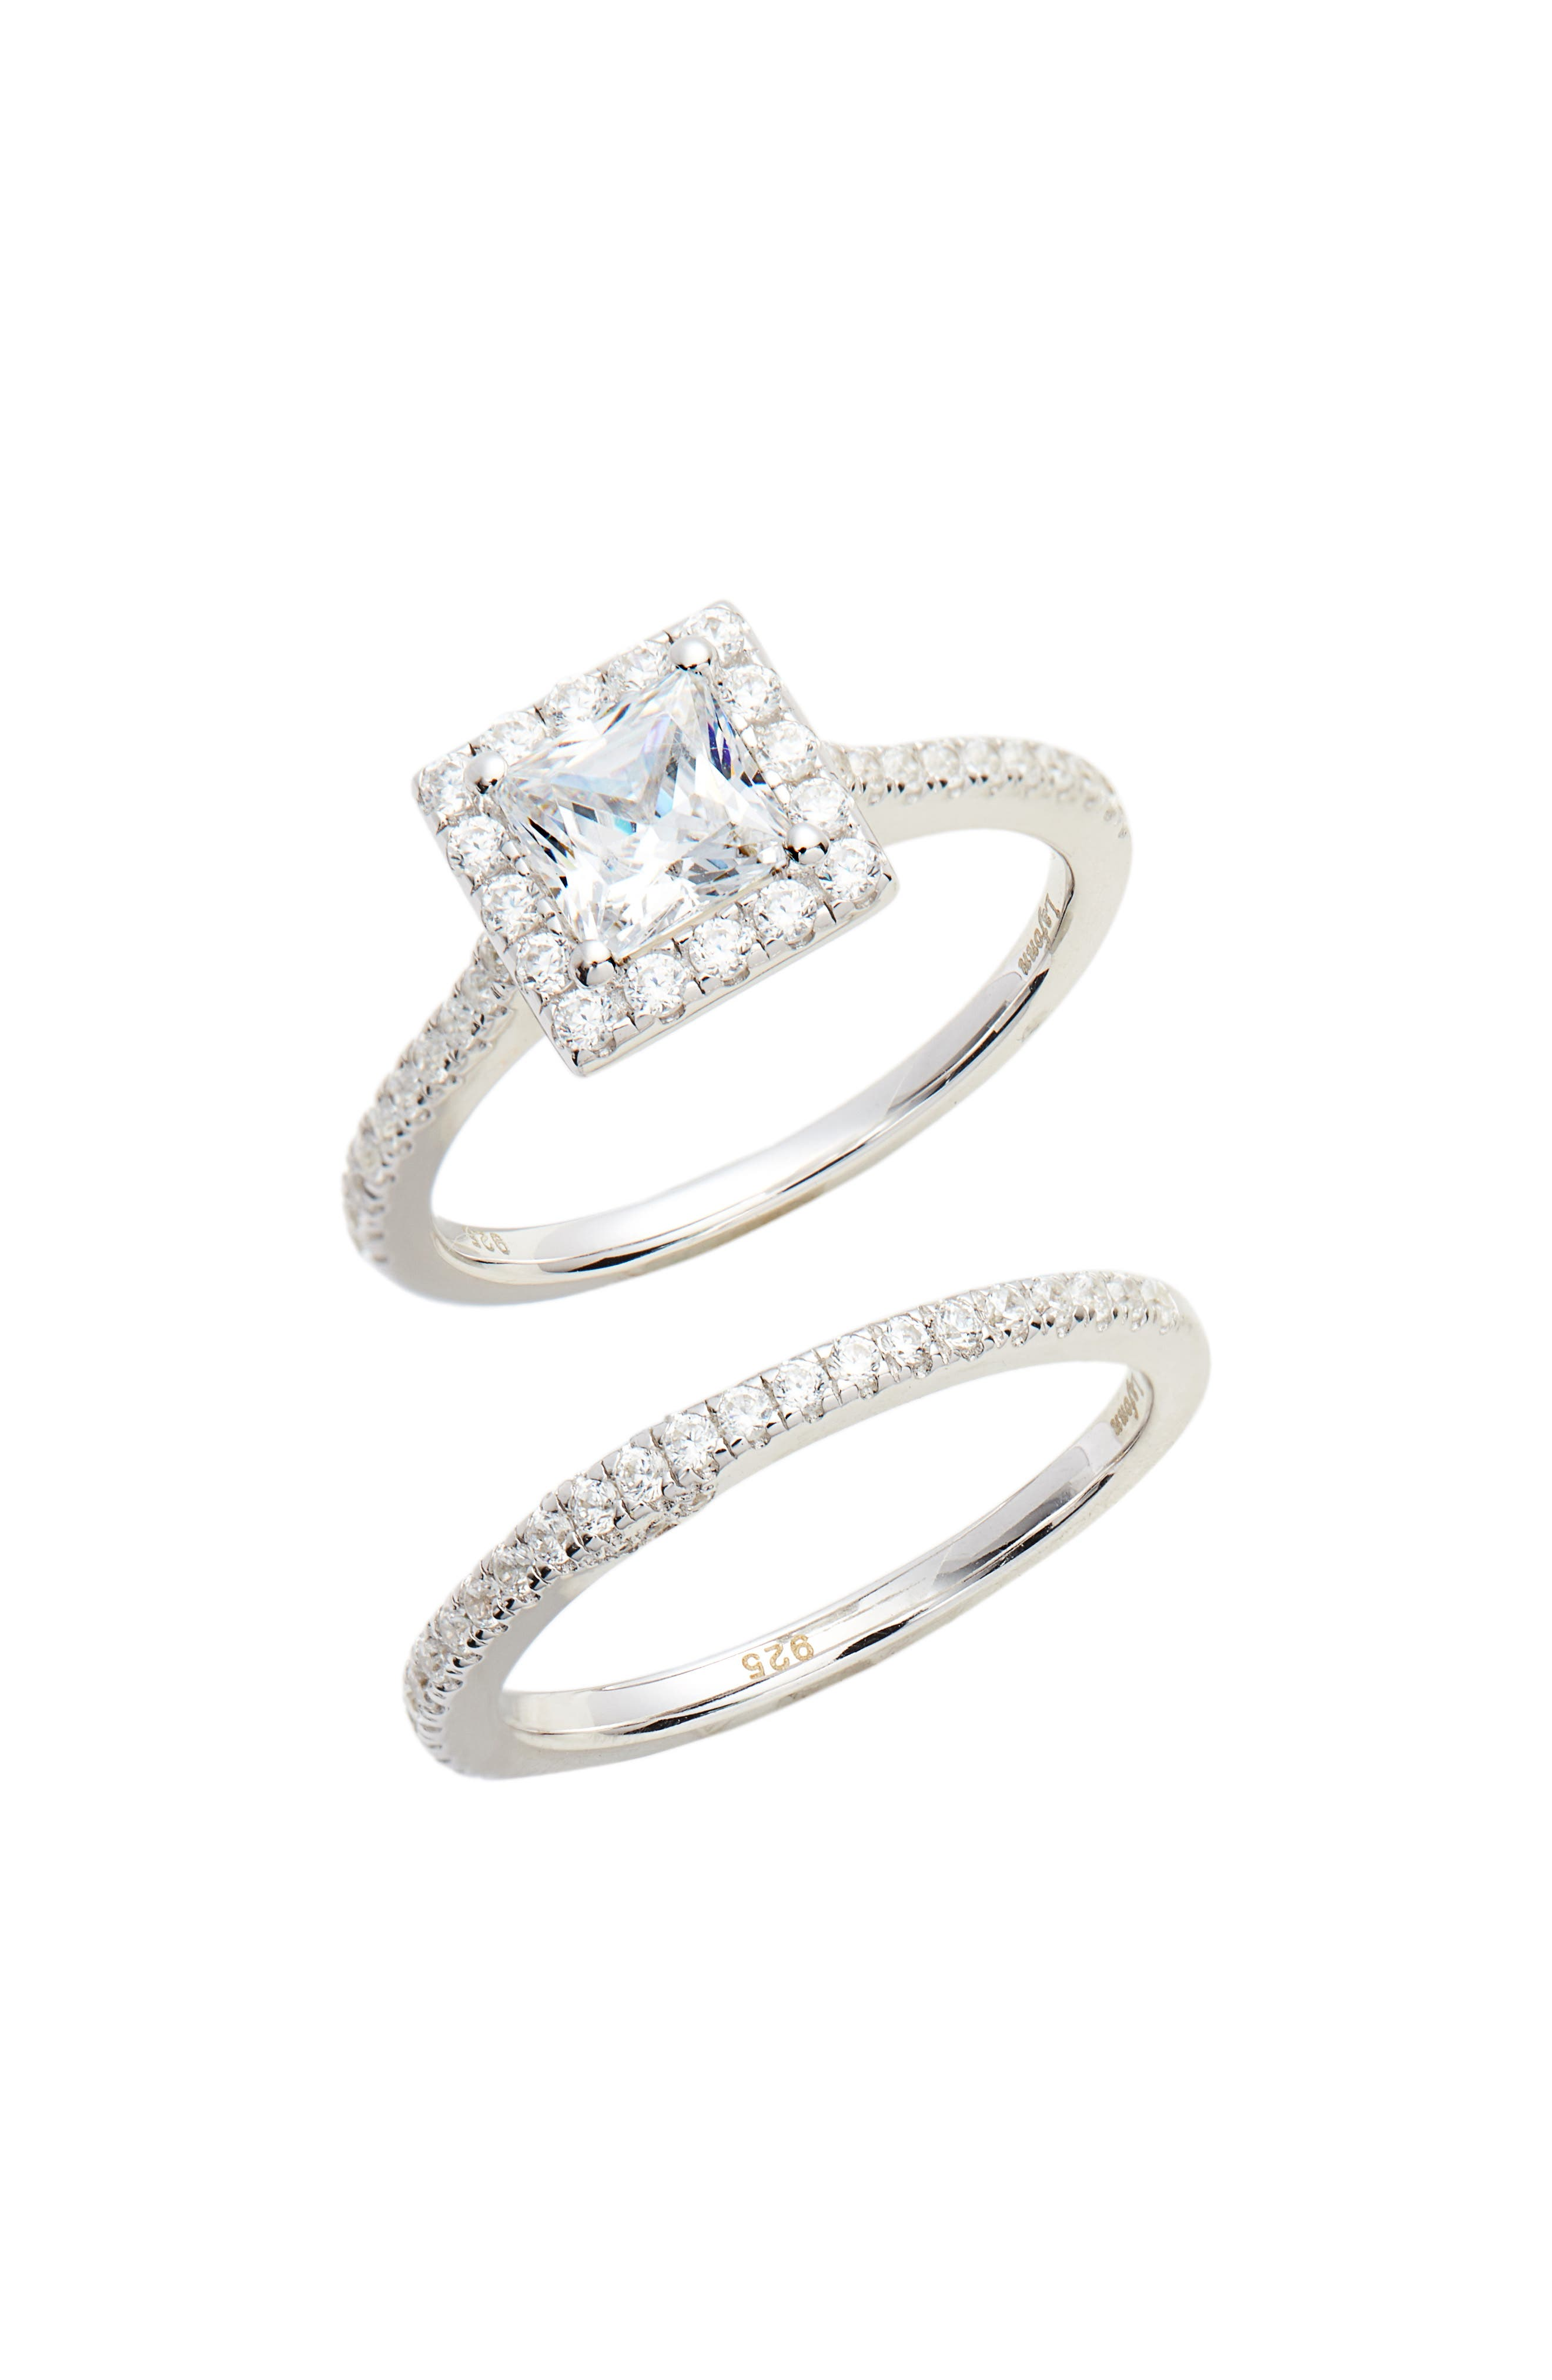 Joined at the Heart Cushion Cut Halo Wedding Ring Set,                             Main thumbnail 1, color,                             SILVER/ CLEAR